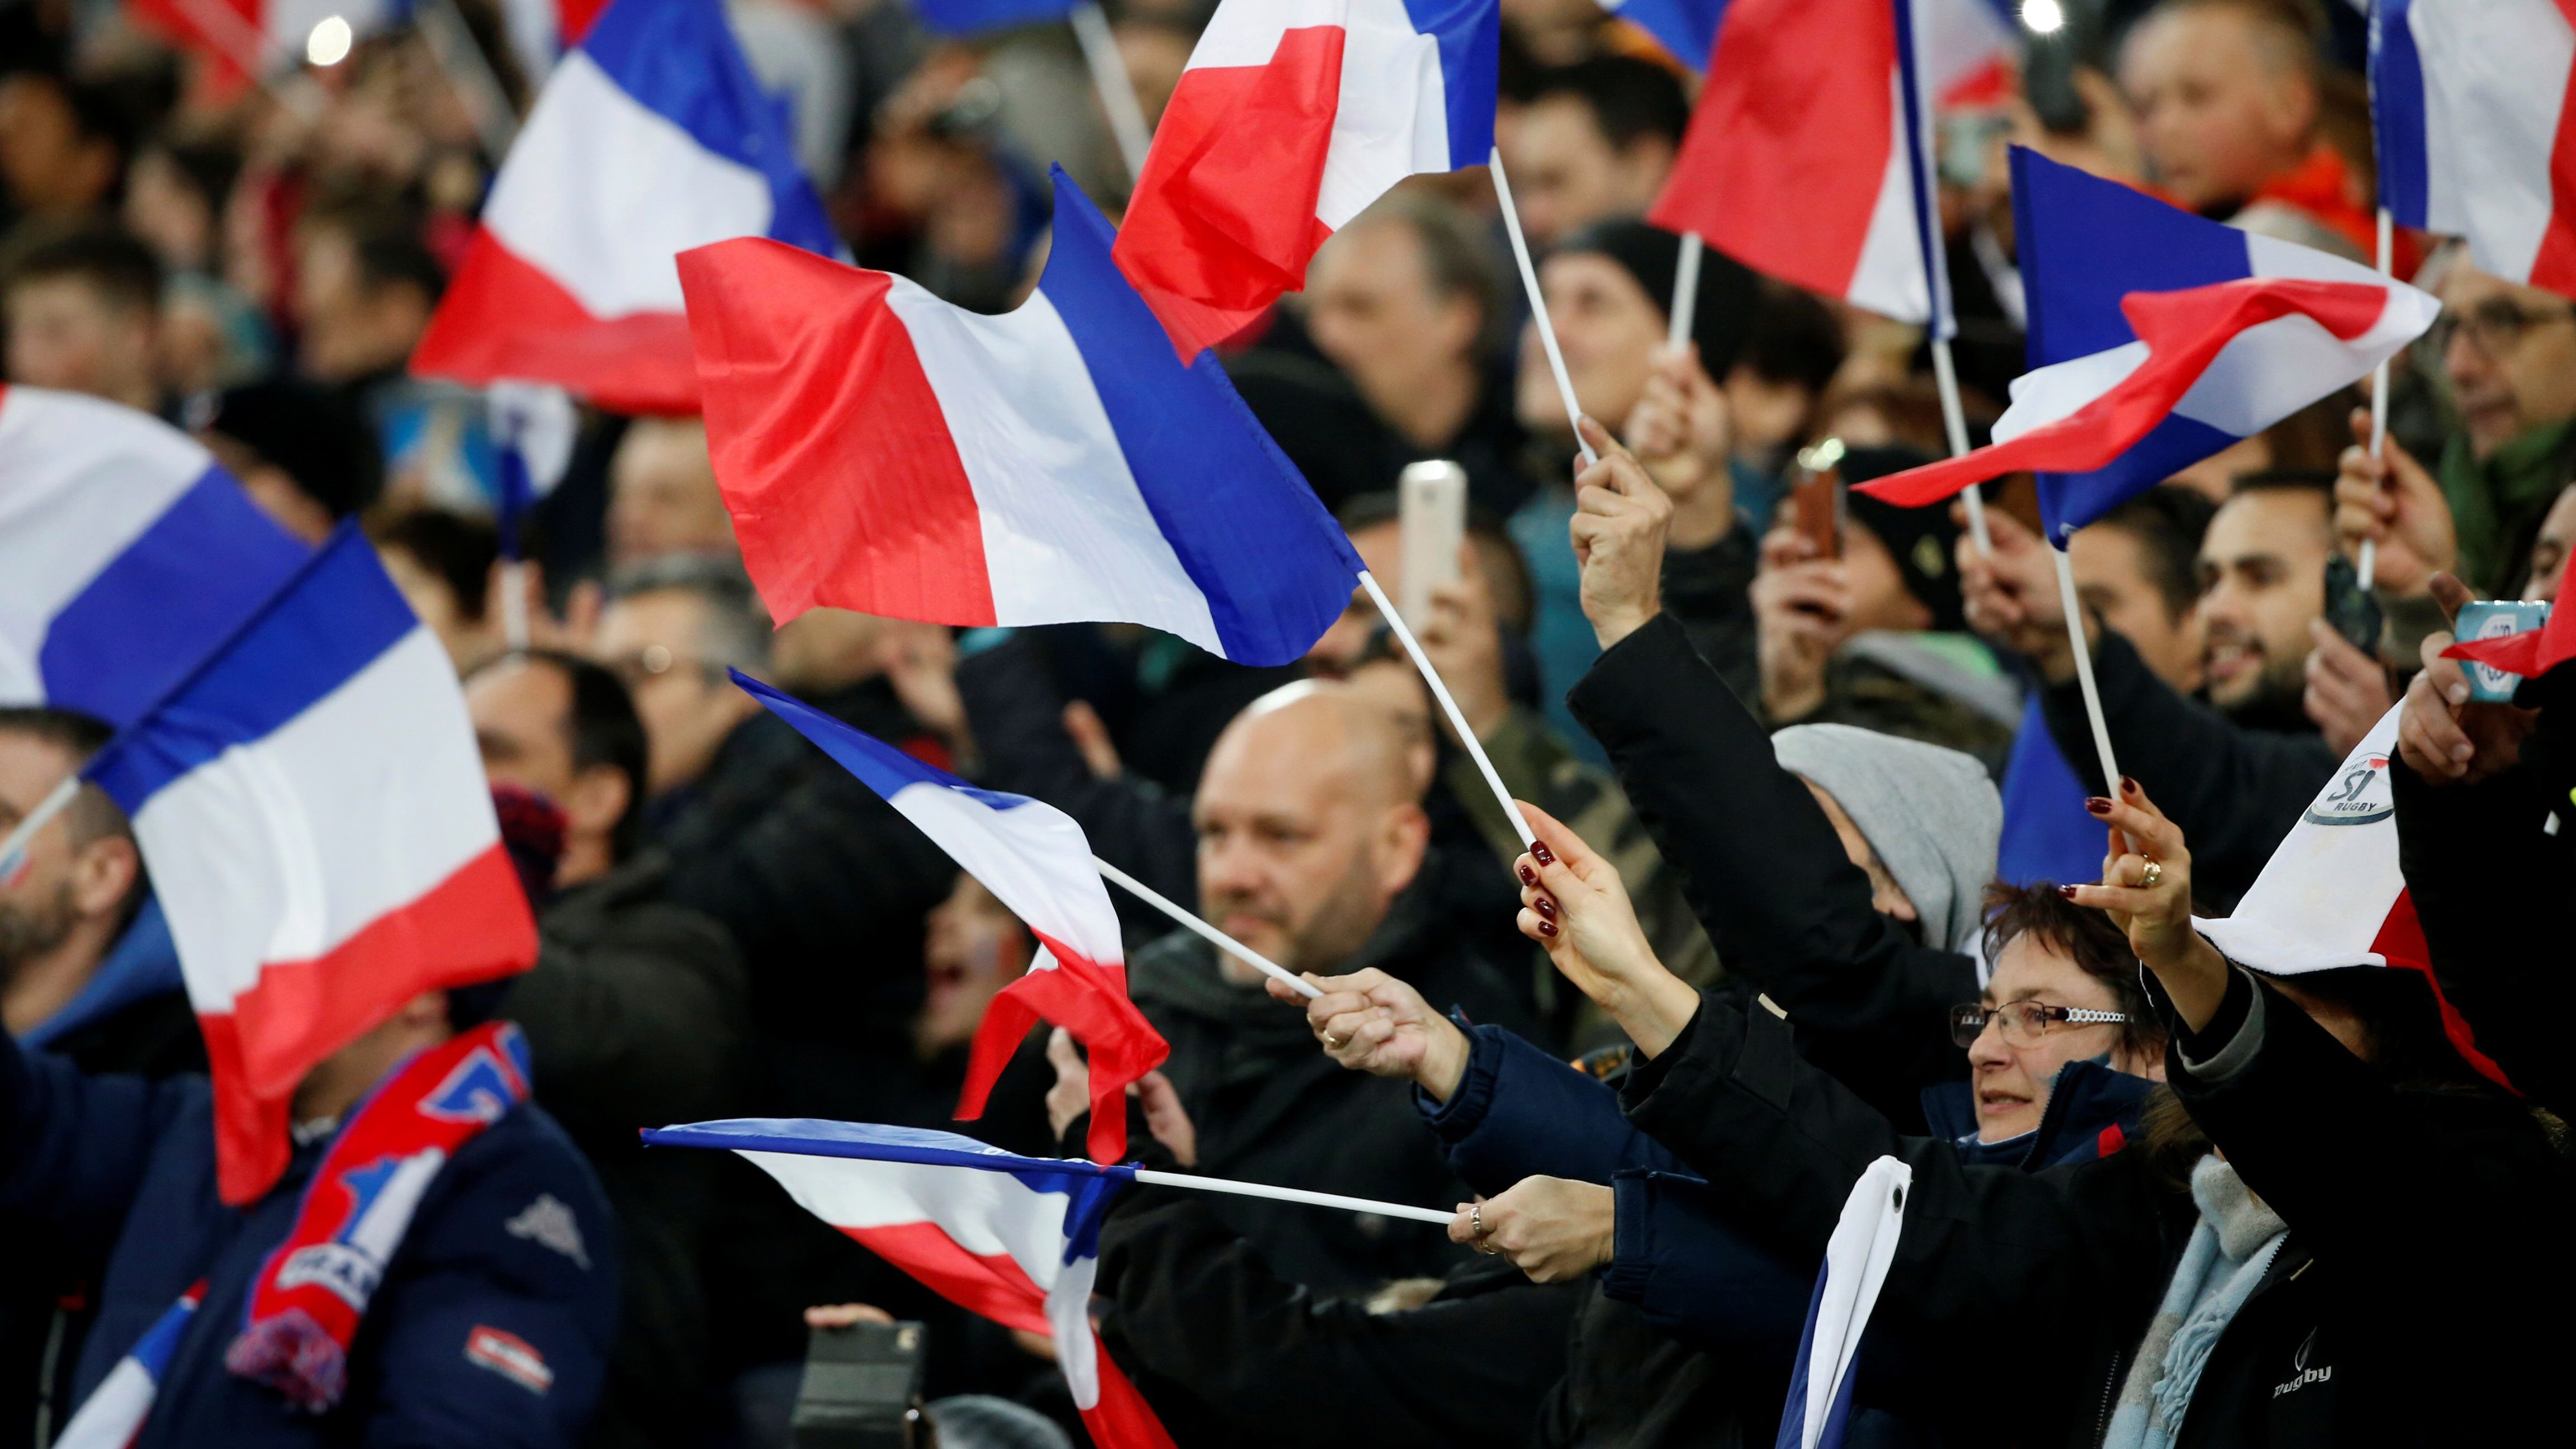 Rugby Union - Six Nations Championship - France vs Italy